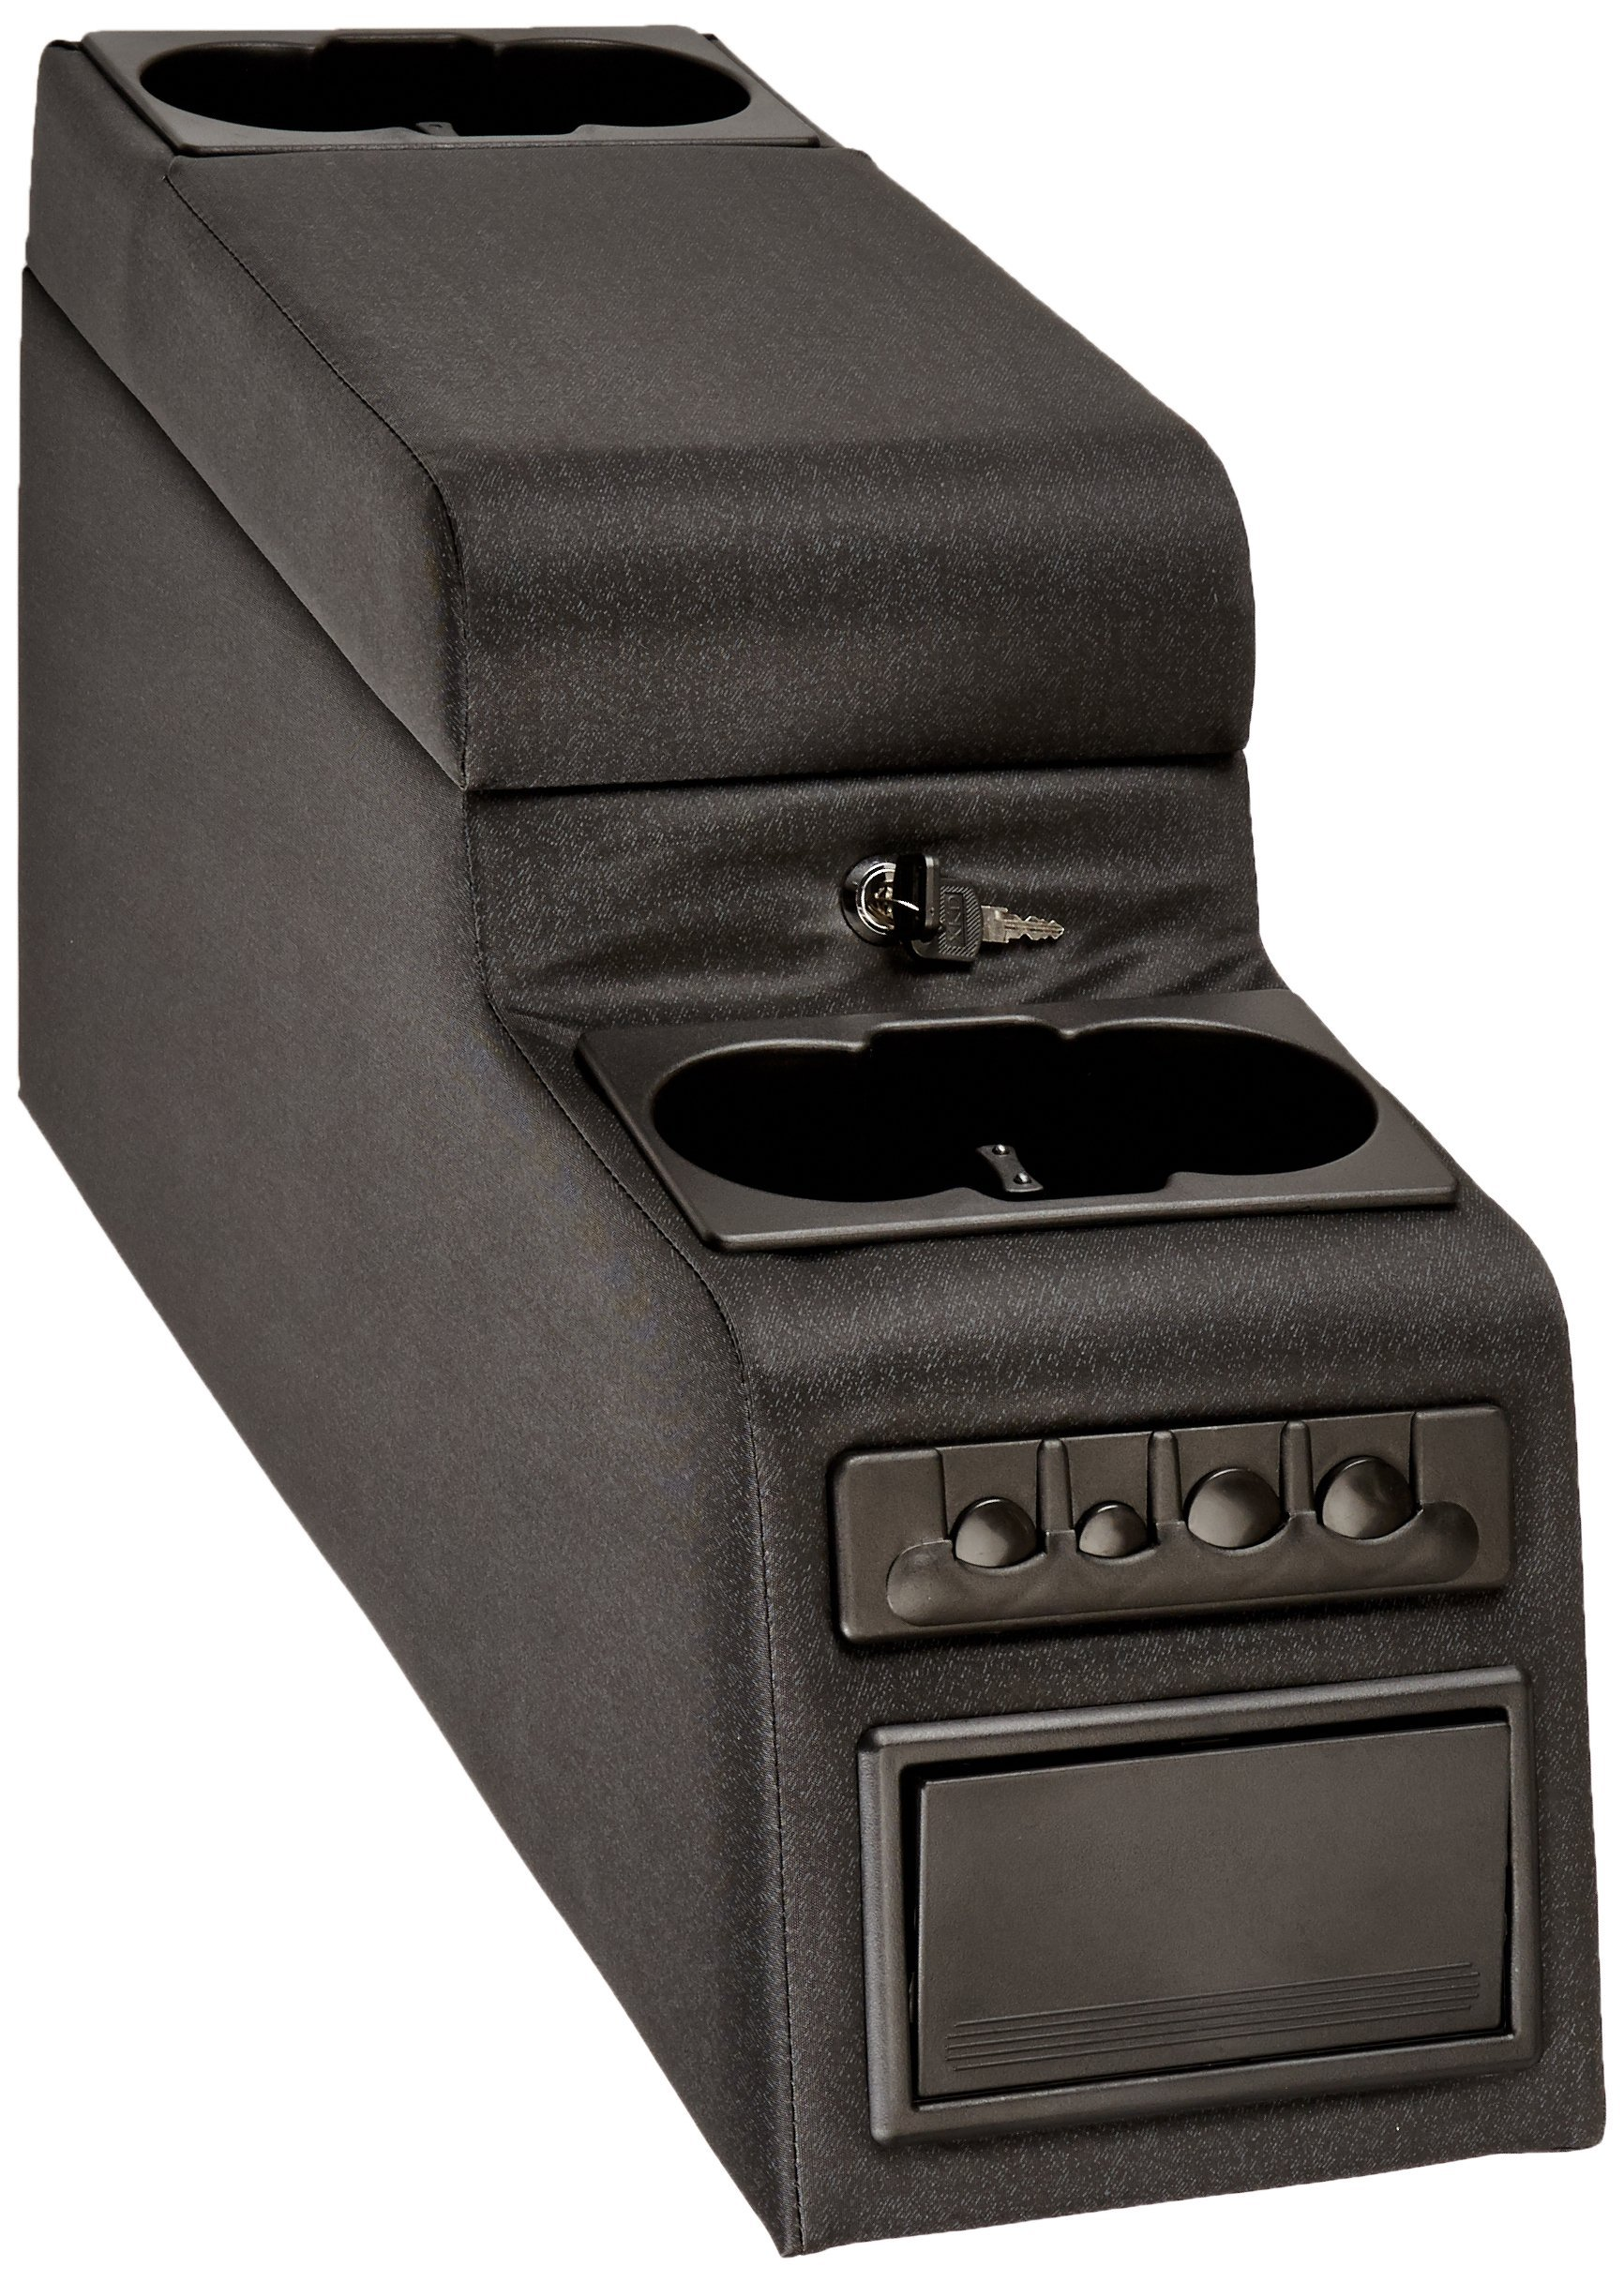 Vertically Driven Products VDP 31515 Black Locking Central Console by Vertically Driven Products